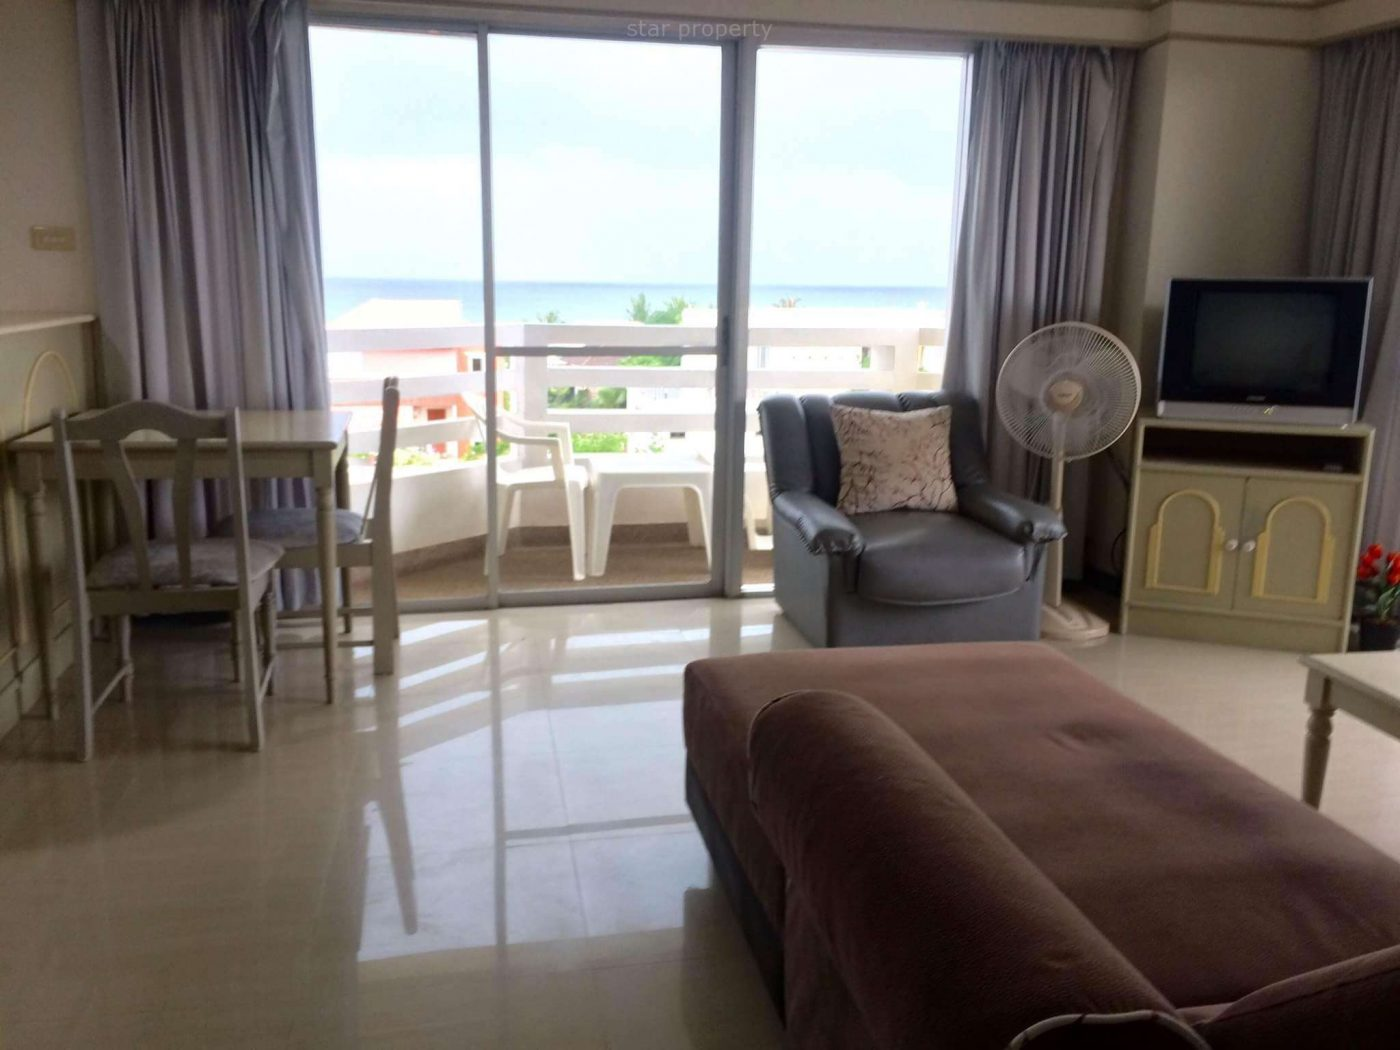 1 bedroom condo for rent